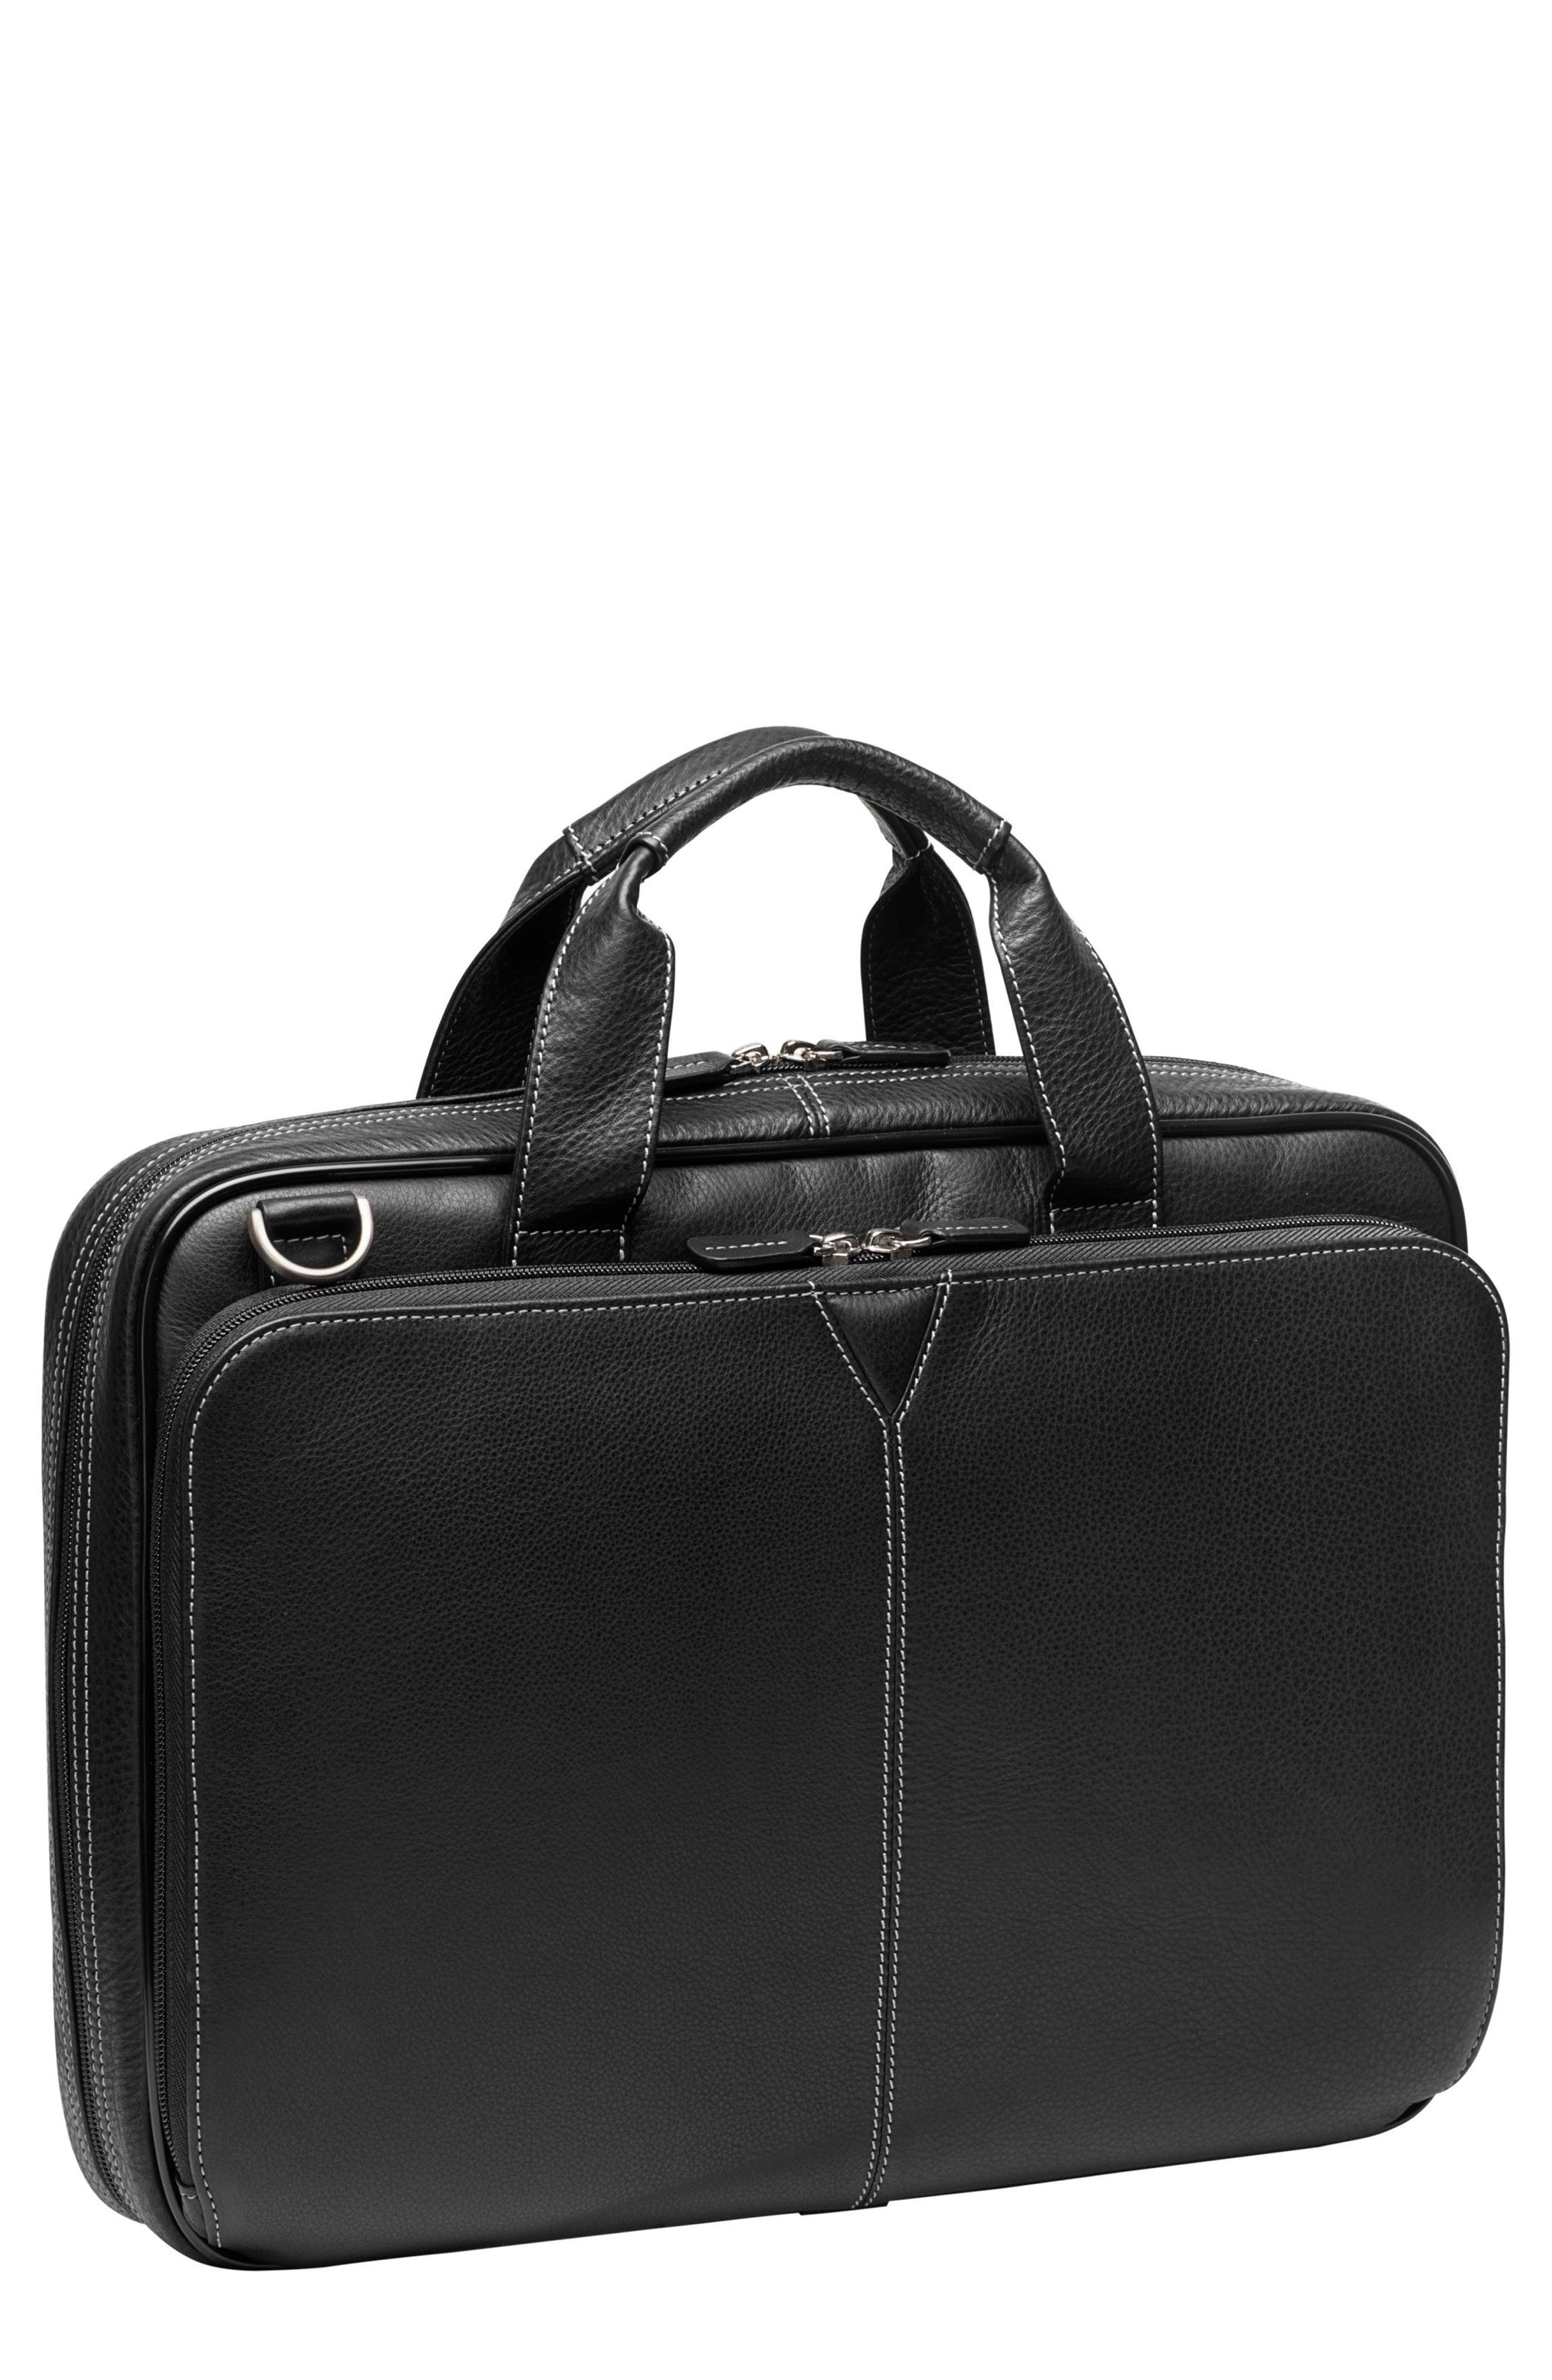 Leather Briefcase,                             Main thumbnail 1, color,                             001